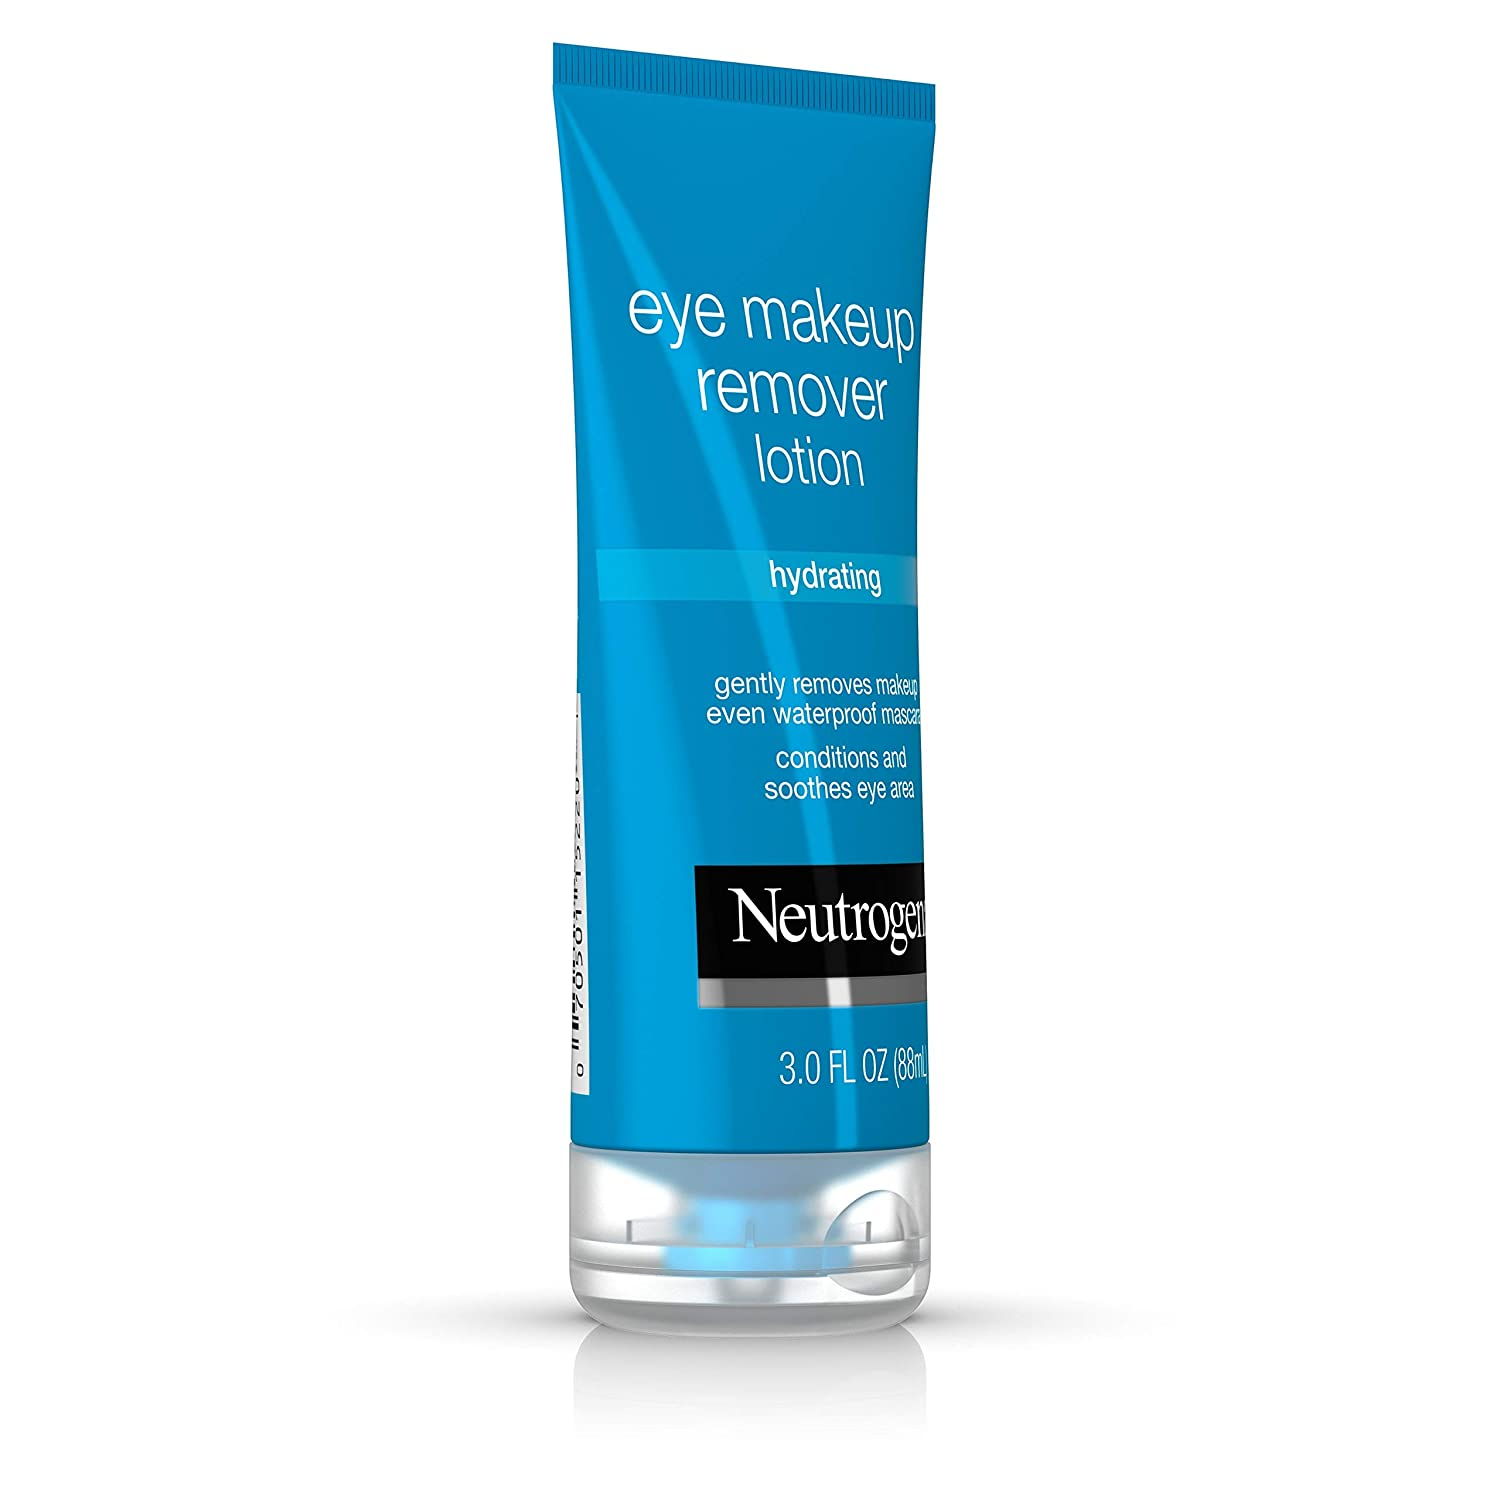 2f4ab315afd Amazon.com : Neutrogena Hydrating Eye Makeup Remover Lotion, 3 Oz. : Beauty